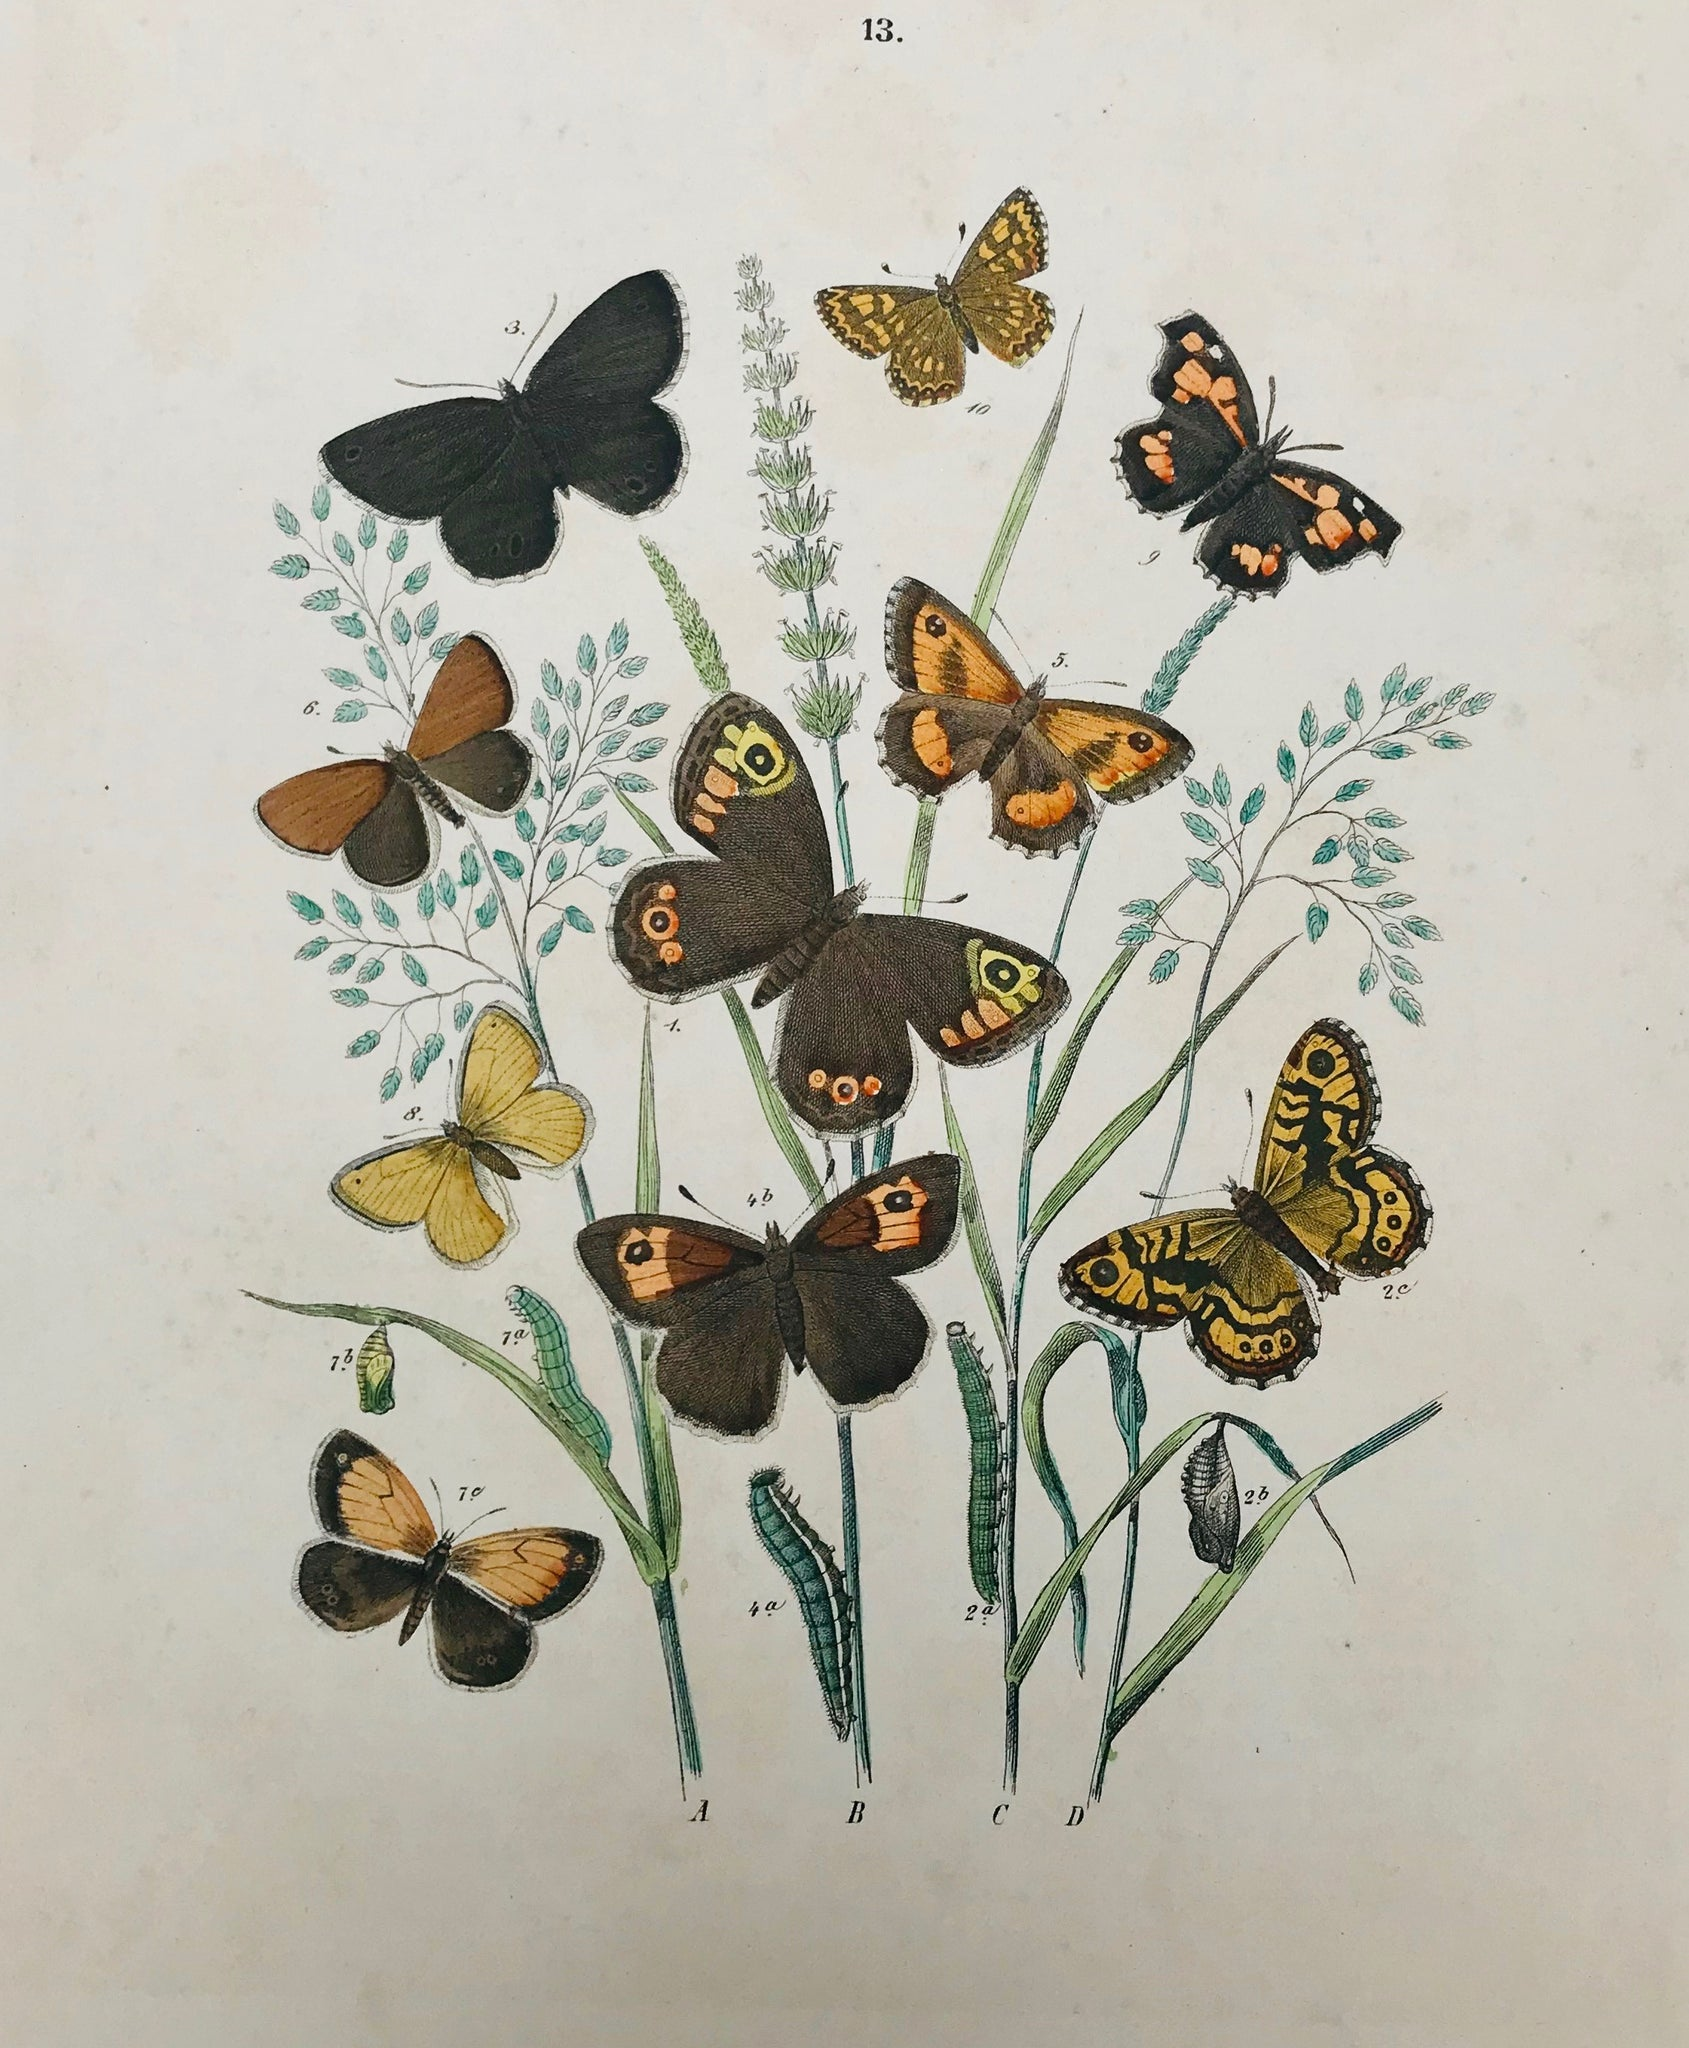 Arranged like colorful and beautiful flower bouquets, these attractive and decorative hand-colored lithographs show, with scientific accuracy, the colorful European world of butterflies and moths. While the scientist finds his Arctiidae, Drepanulidae, Geometridae, Psychidae or Zygaenidae, the lover of beauty finds his eyeful of pleasantry, enjoying multitude and arrangement and the abundance of color